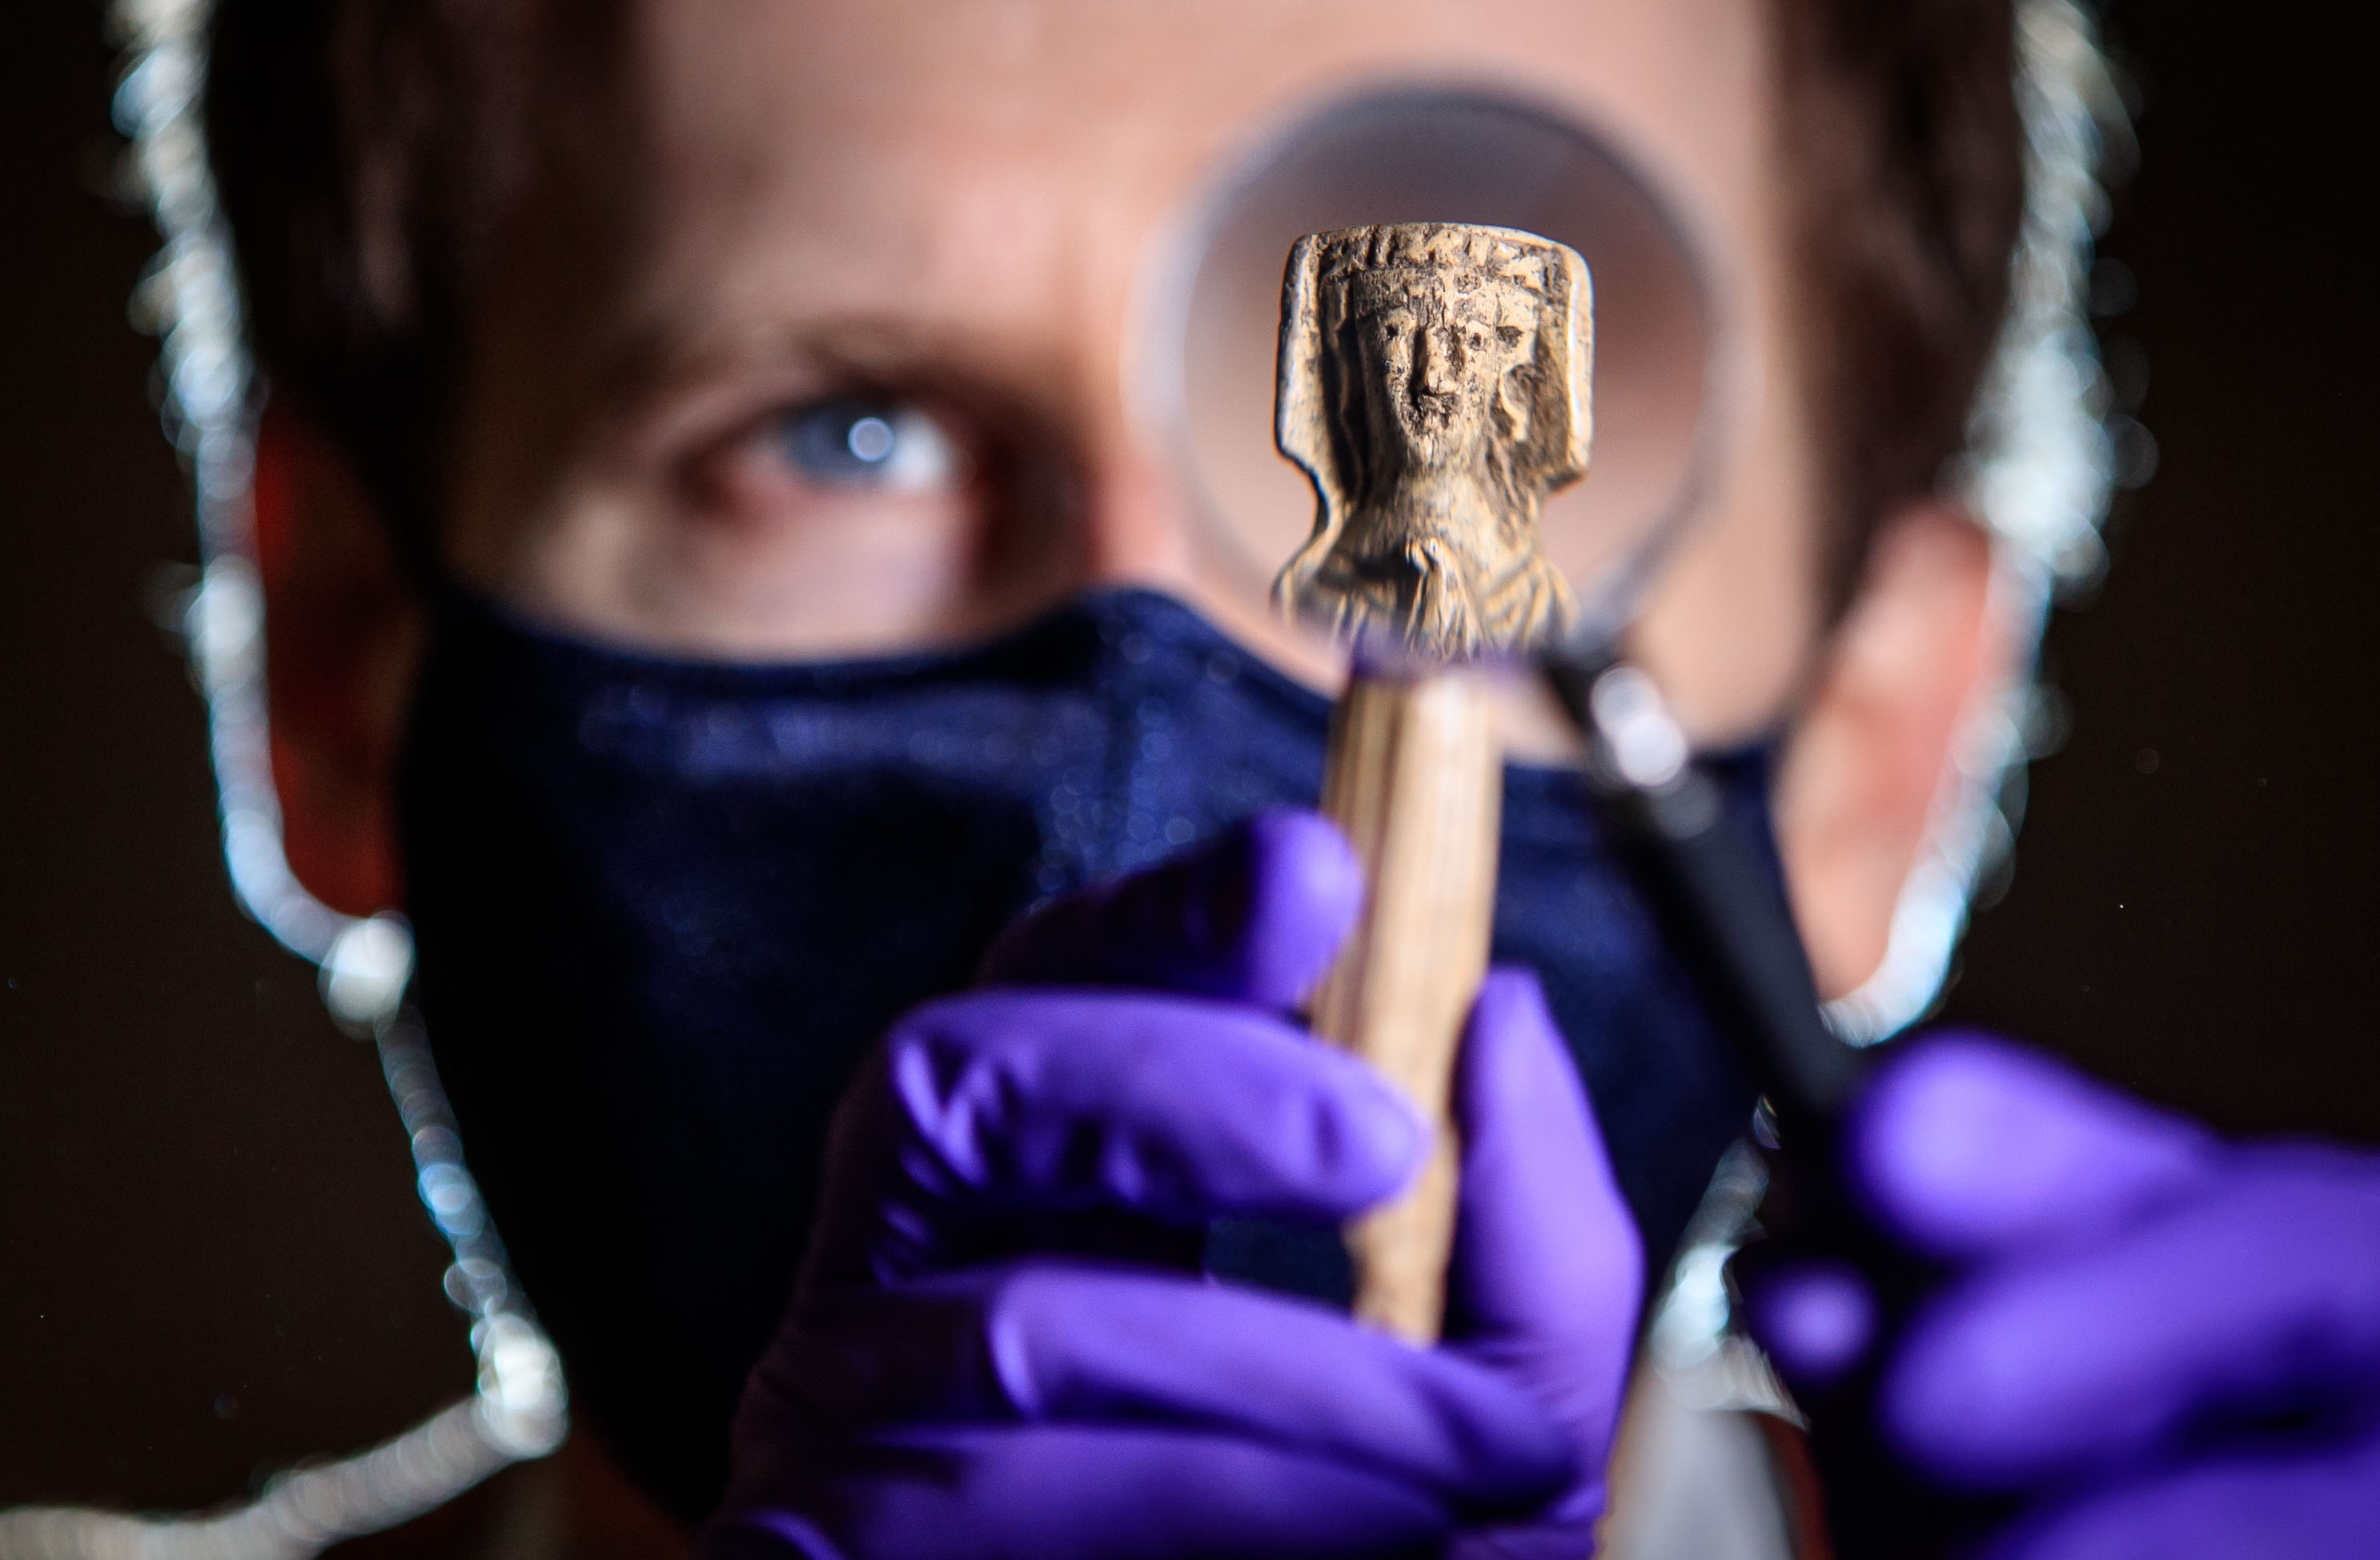 <p>Andrew Woods, senior curator at the Yorkshire Museum, holds a magnifying glass in front of a medieval bone handle carving of a woman dressed in a gown and headdress, dating to the 14th Century, one of thousands of artefacts in the care of York Museums Trust that are being photographed and put online for the public to view, while the museum in York remains closed during England's third national lockdown to curb the spread of coronavirus. Picture date: Wednesday March 10, 2021. (Photo by Danny Lawson/PA Images via Getty Images)</p>